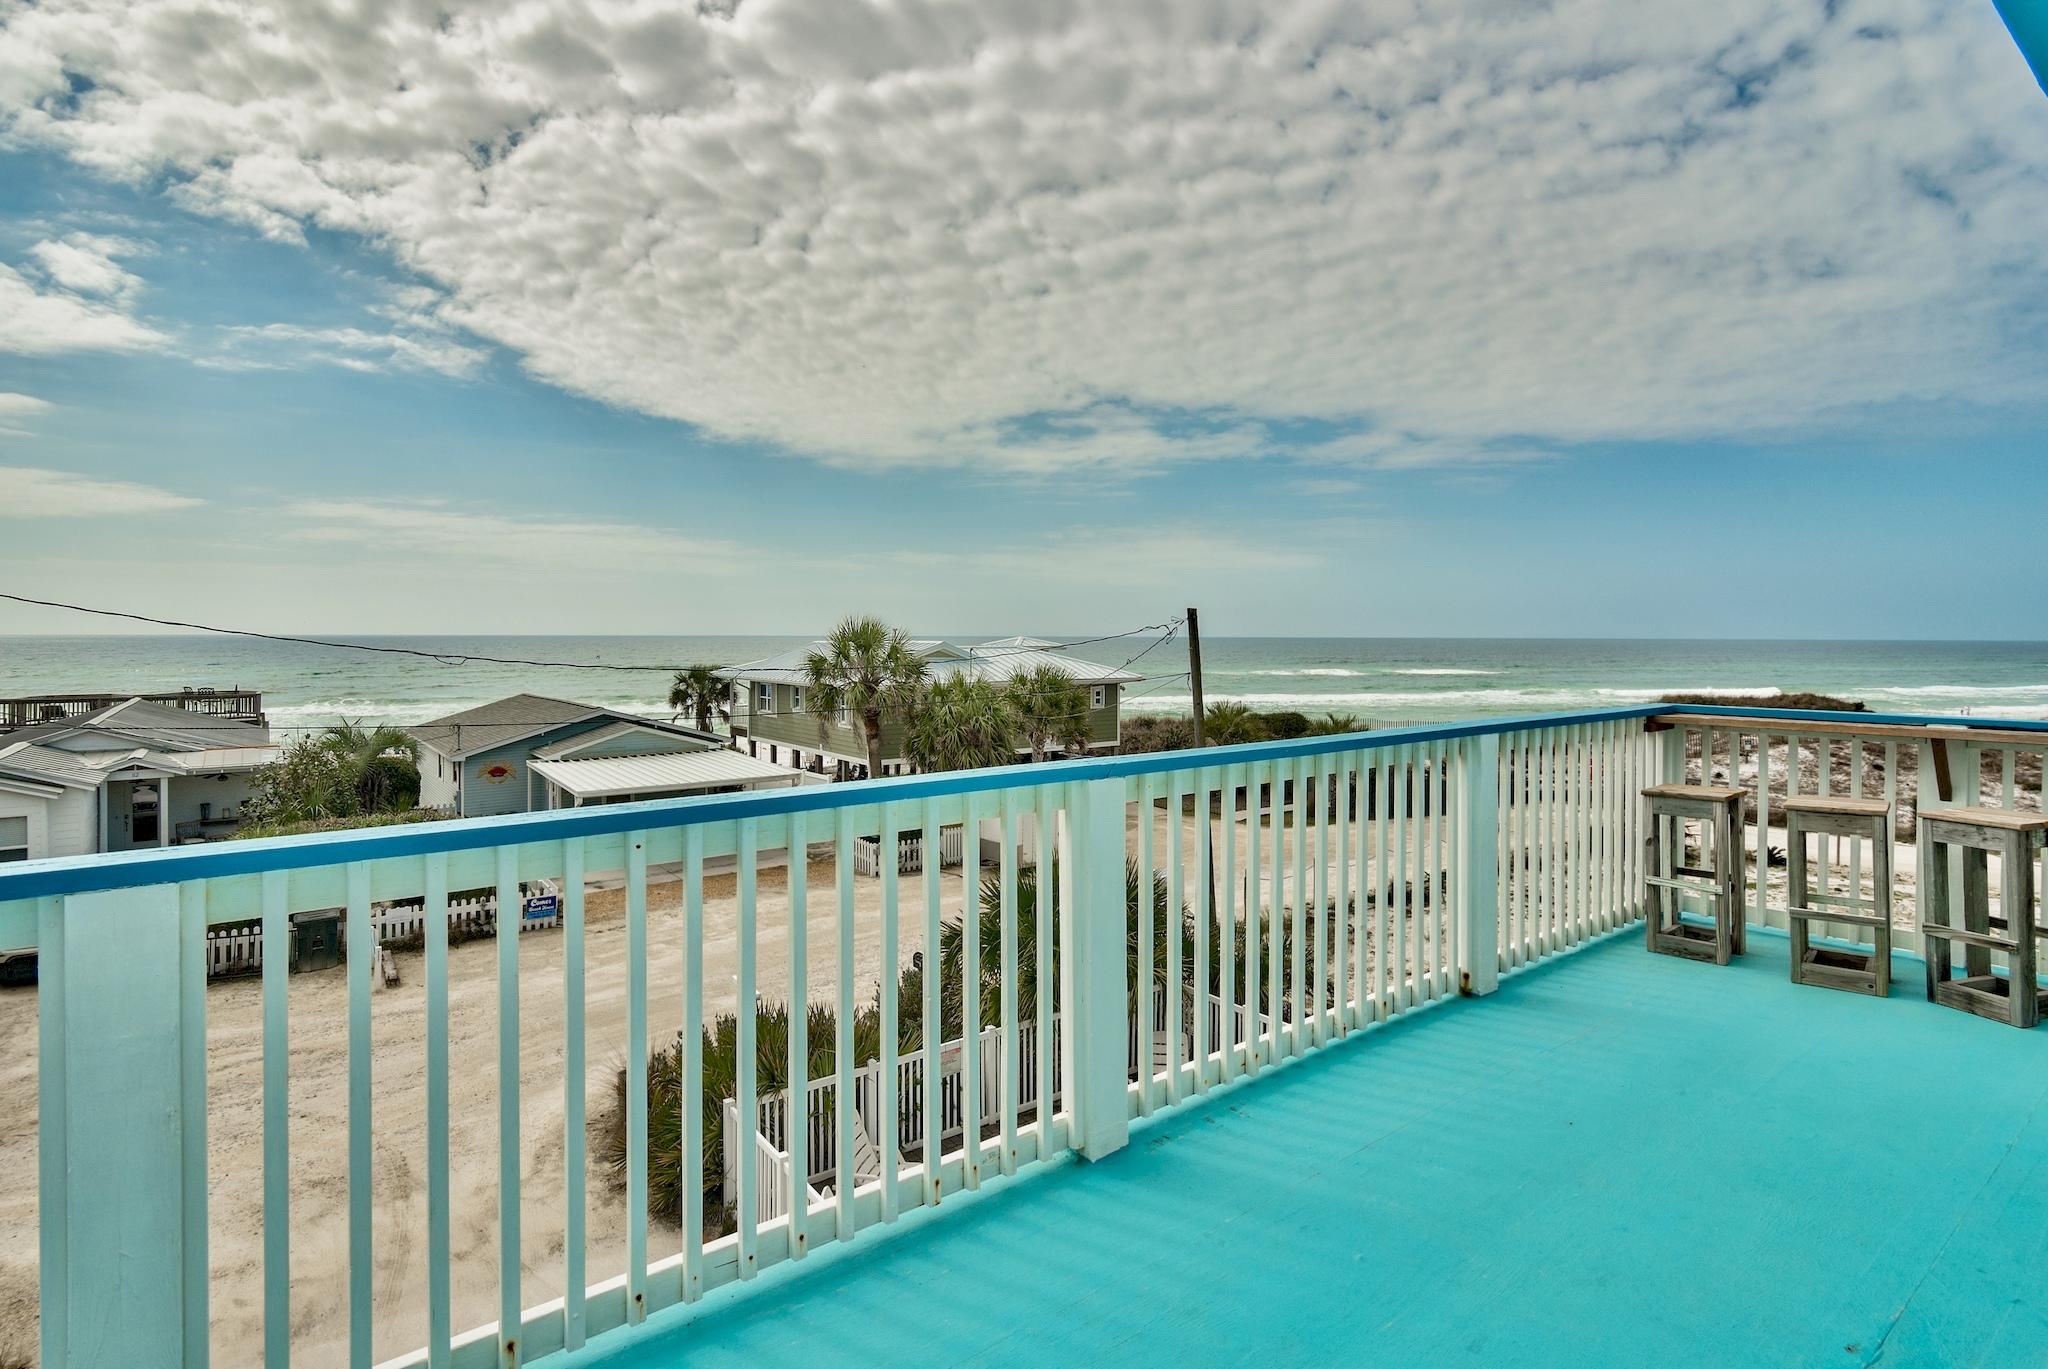 Perched on high elevation and located one tier back from the gulf, 79 Emerald Cove offers expansive